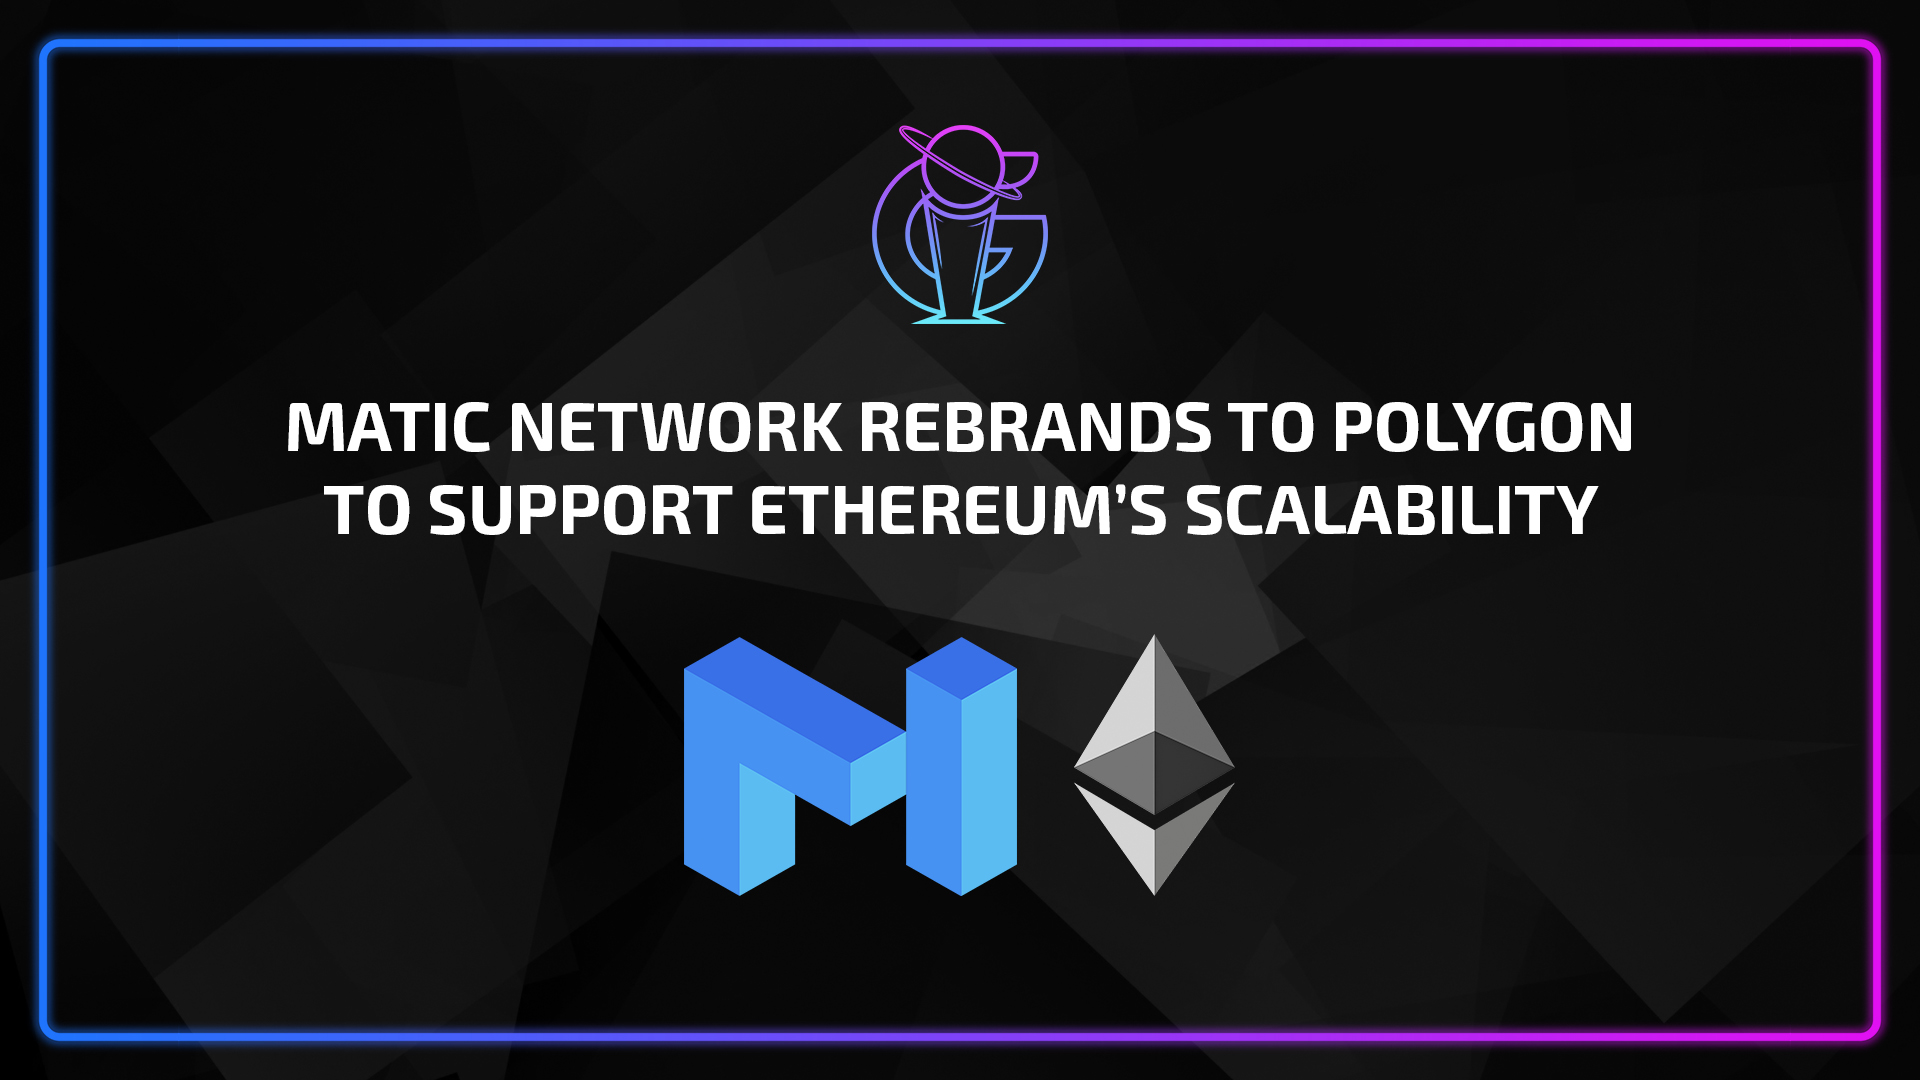 A storm is brewing: Matic rebrands to Polygon, pivoting strategy to support scalability issues on Ethereum.